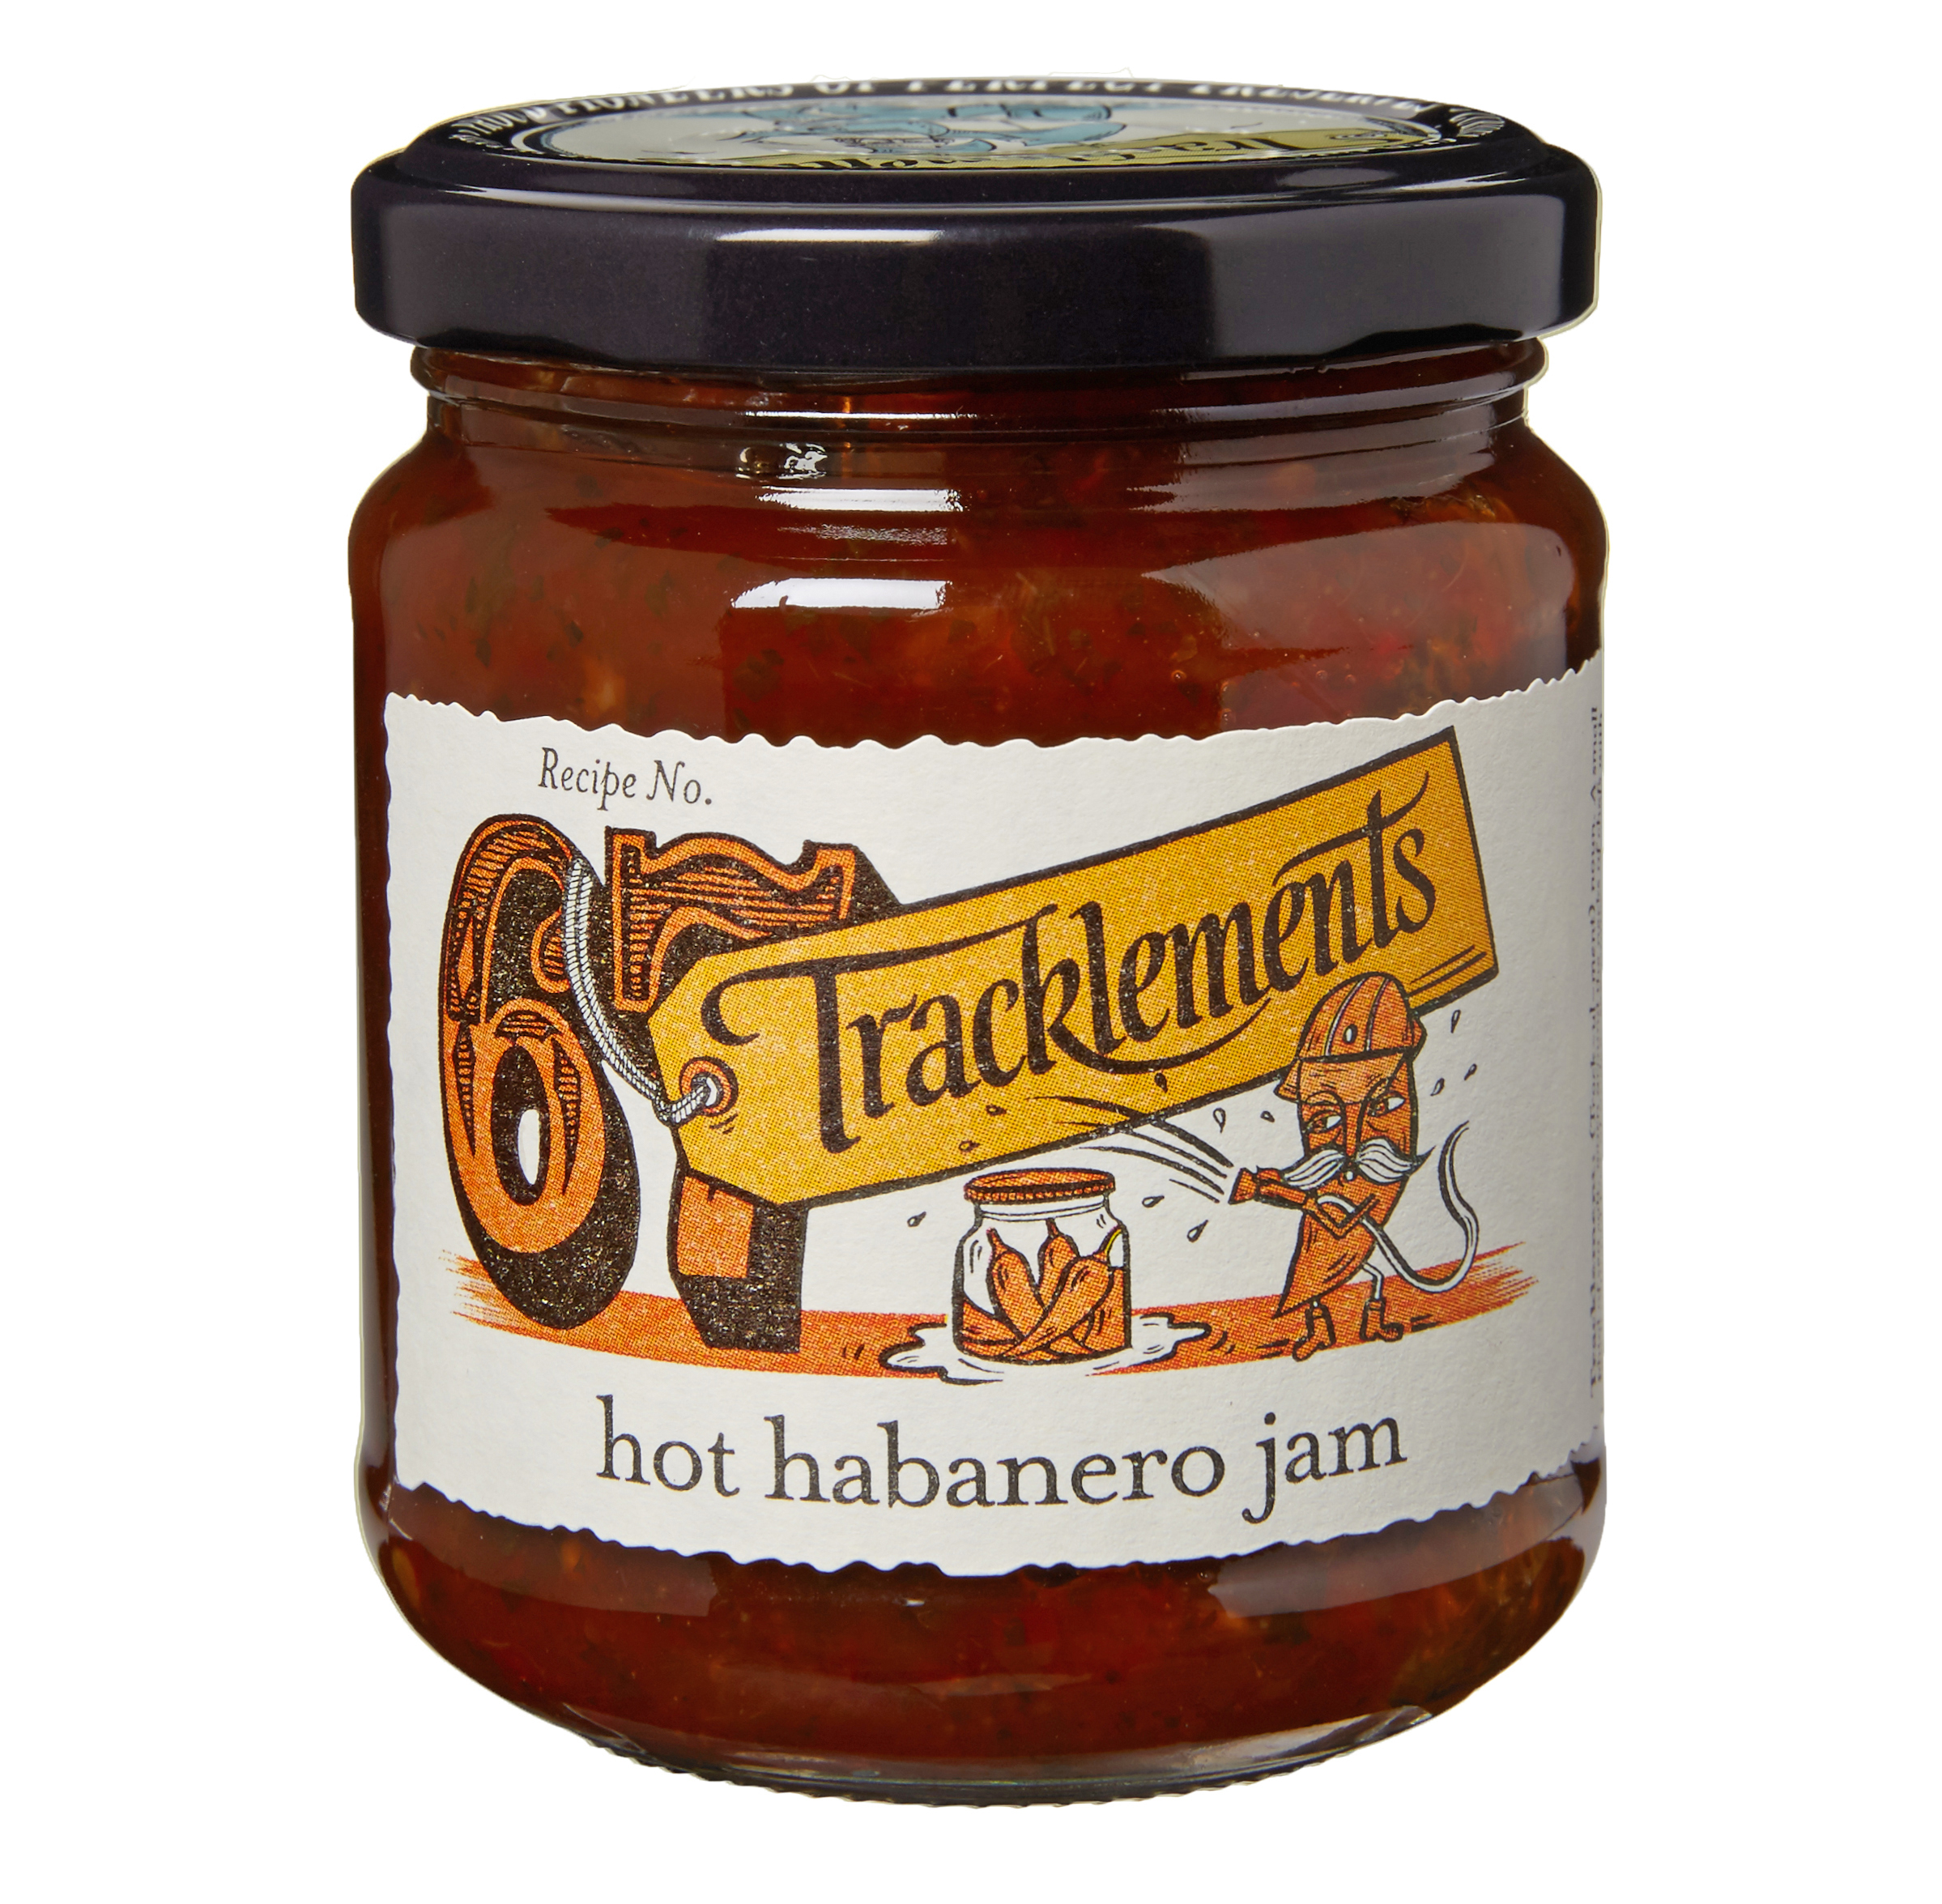 Tracklements Hot Habanero Jam (Tracklements/PA)